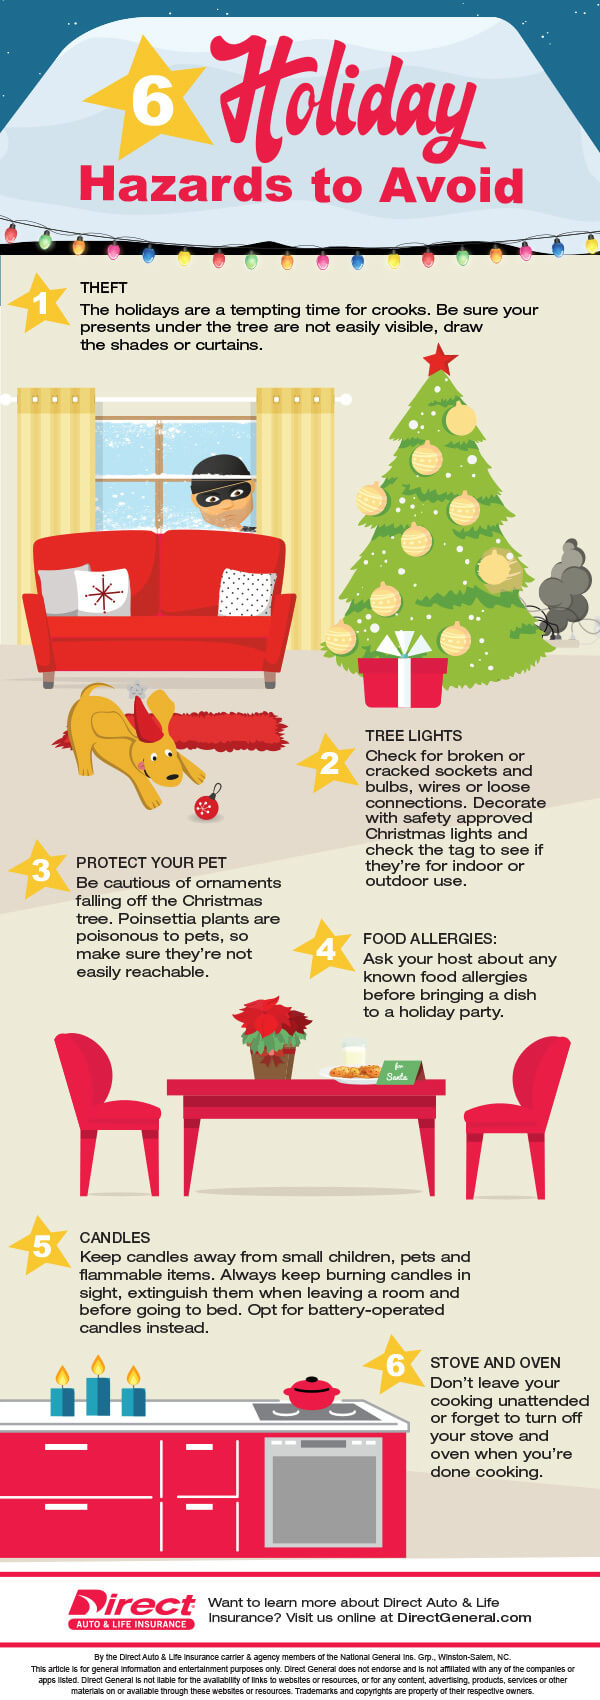 Direct General Auto Insurance >> 6 Holiday Home Hazards to Avoid [INFOGRAPHIC] | Direct ...